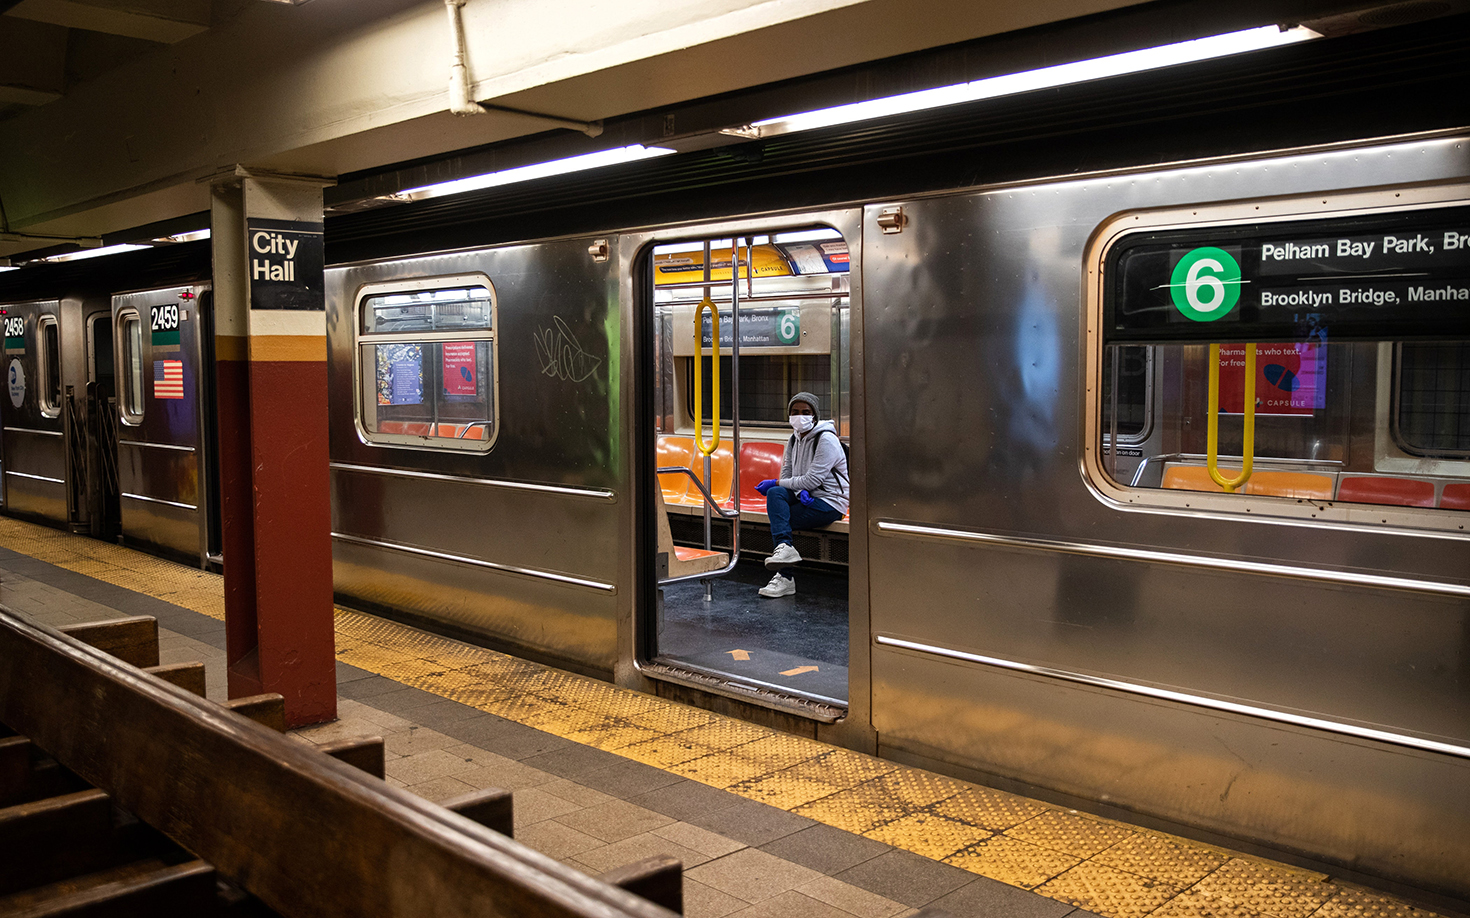 Coronavirus News: Social Distancing Concerns for Subways, MTA Services Once NYC Begins to Reopen